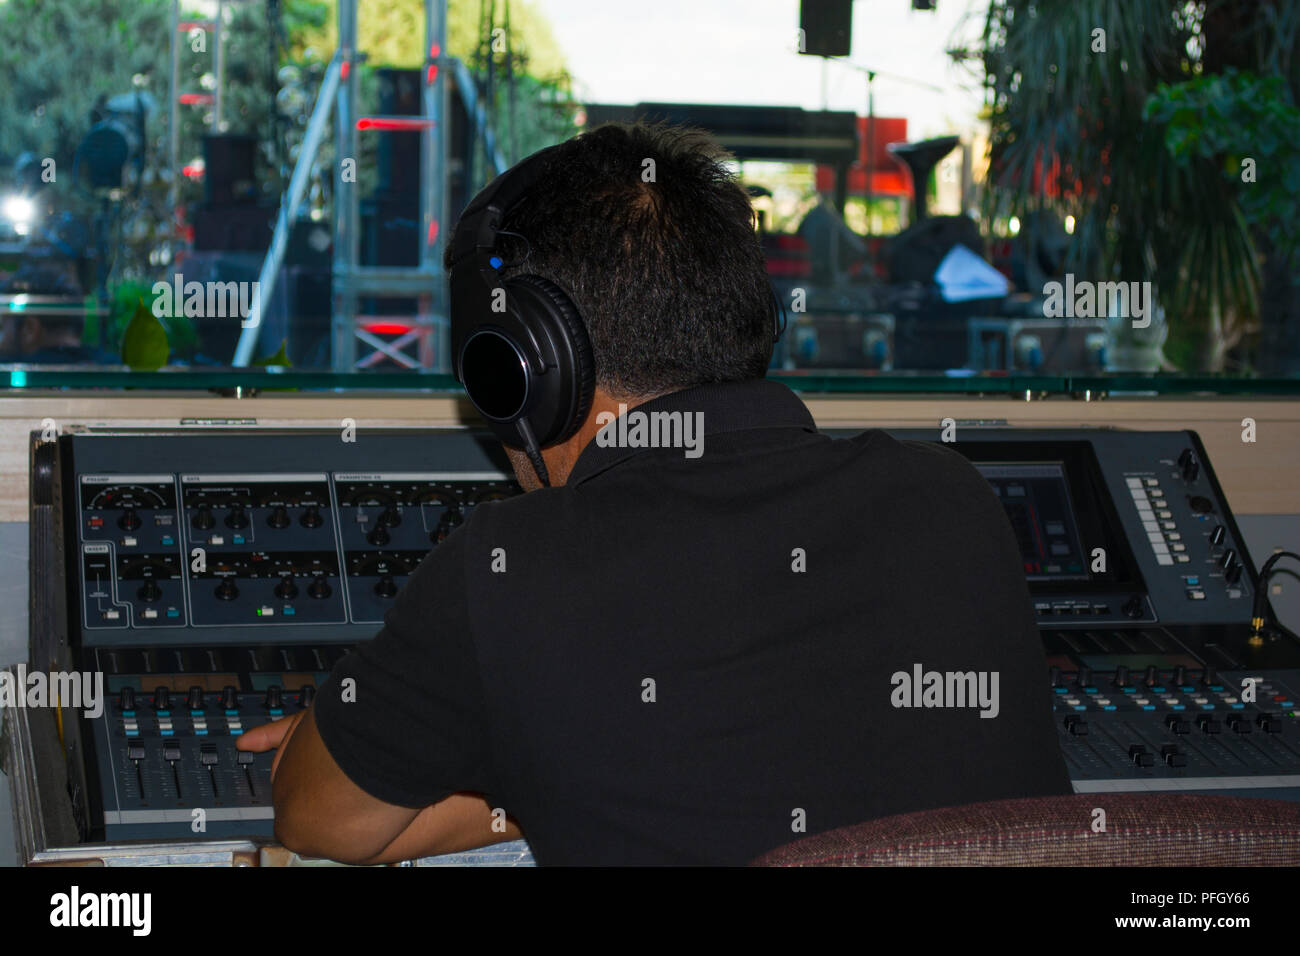 man stage sound mixer at sound engineer hand using audio mix .Voice control and live broadcast Concerts concept. - Stock Image